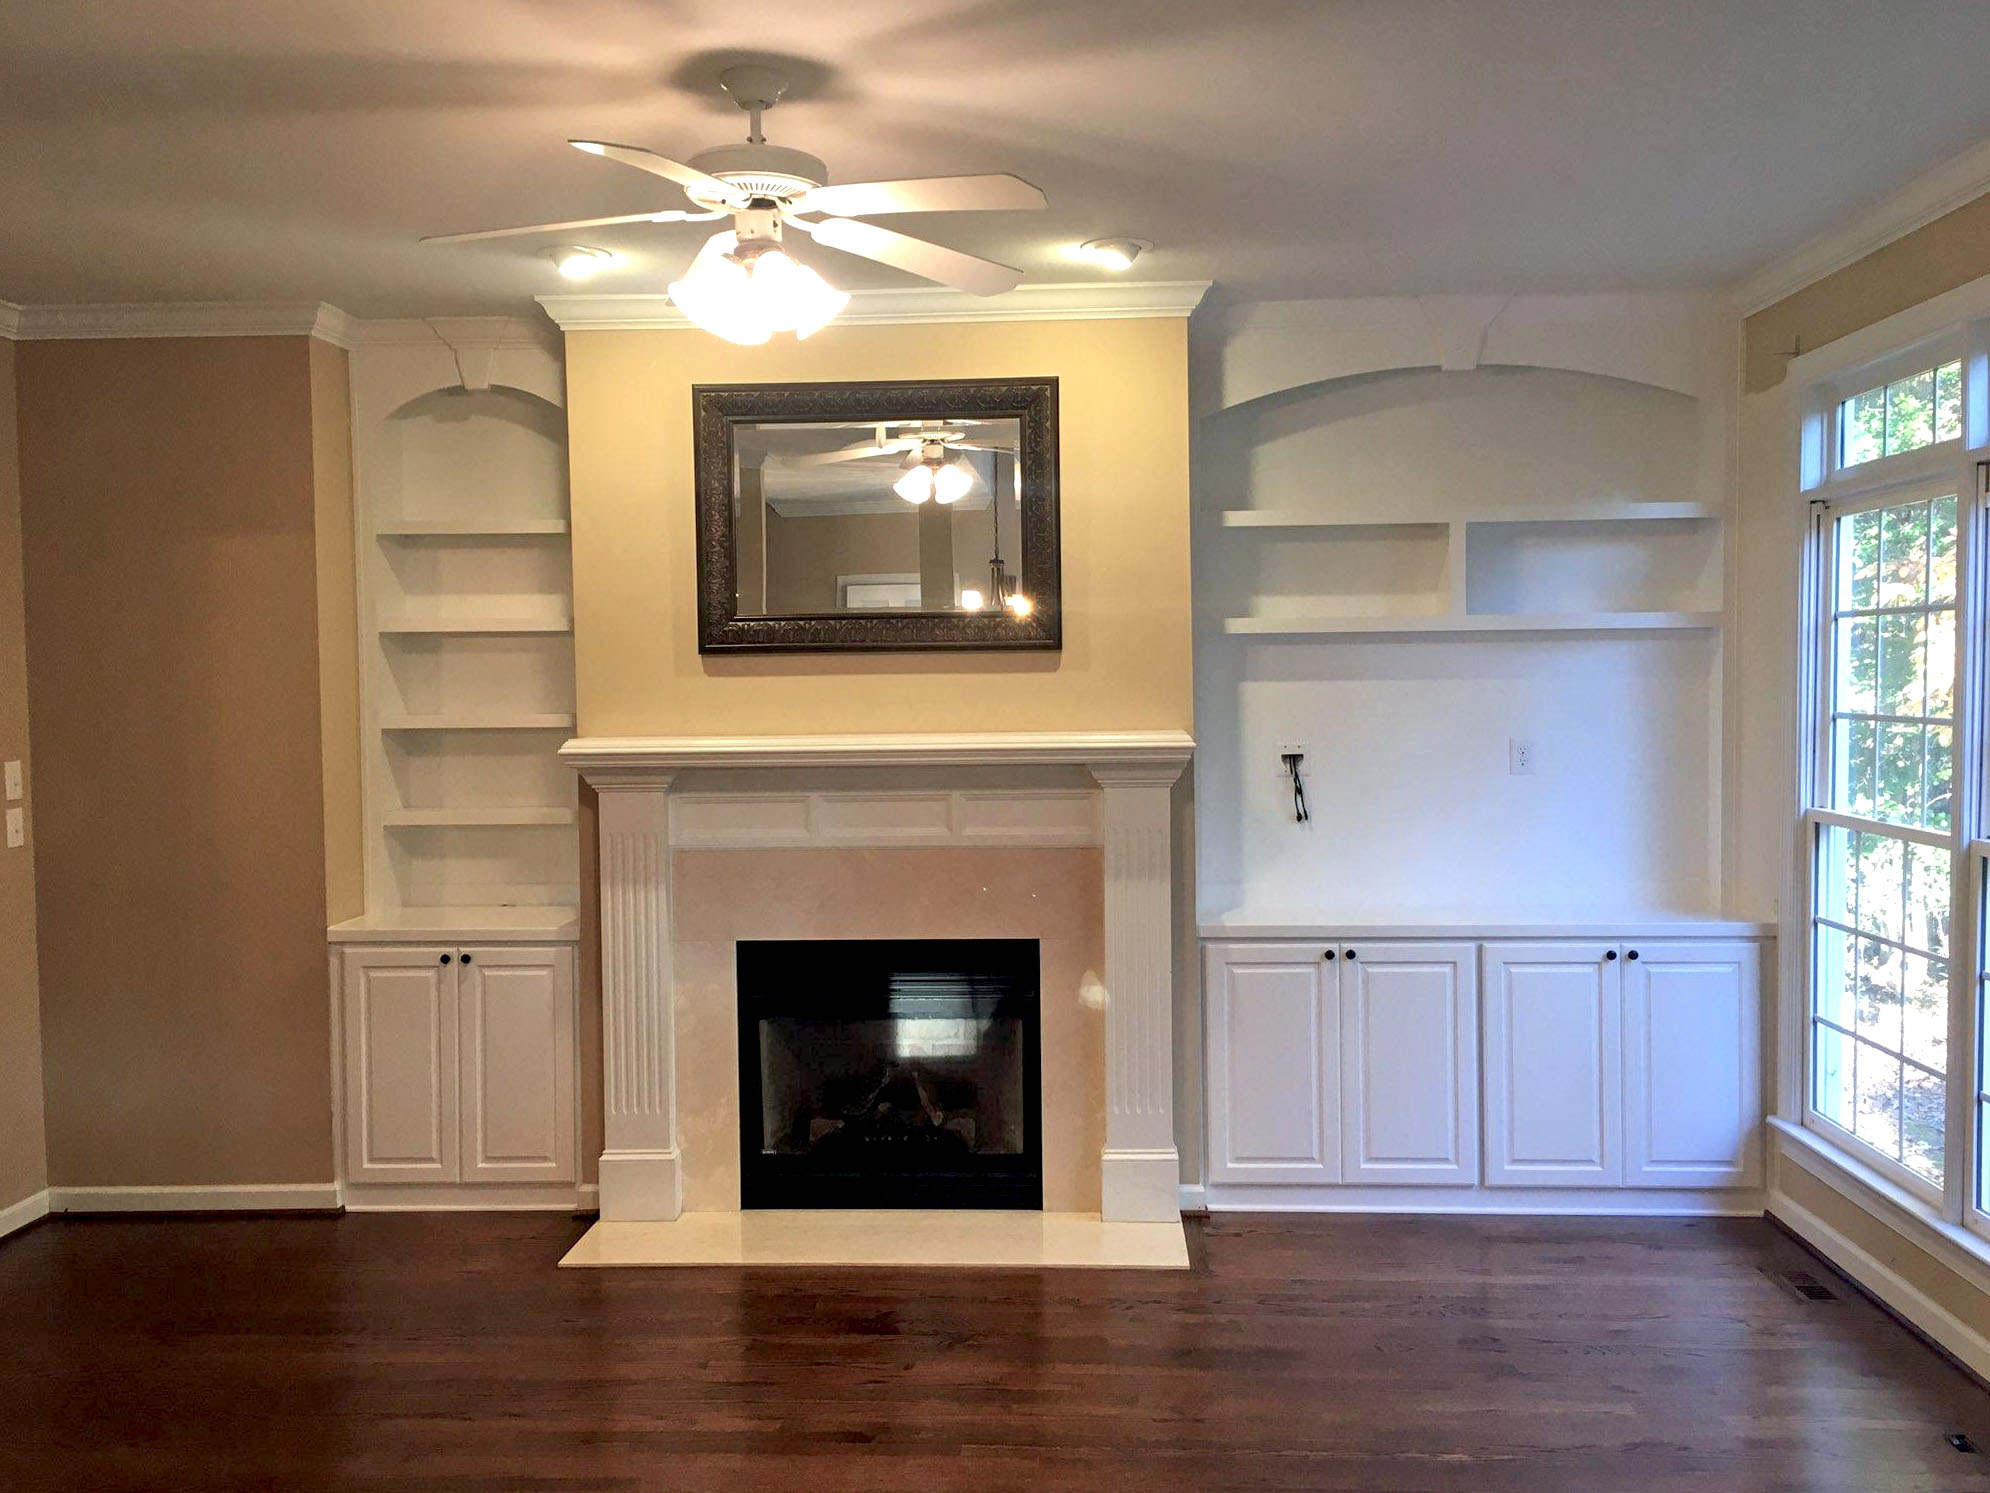 Fireplace Built-Ins with Adjustable Shelves, Arches, Keystone, Raised Panel Doors, TV Opening, and Crown